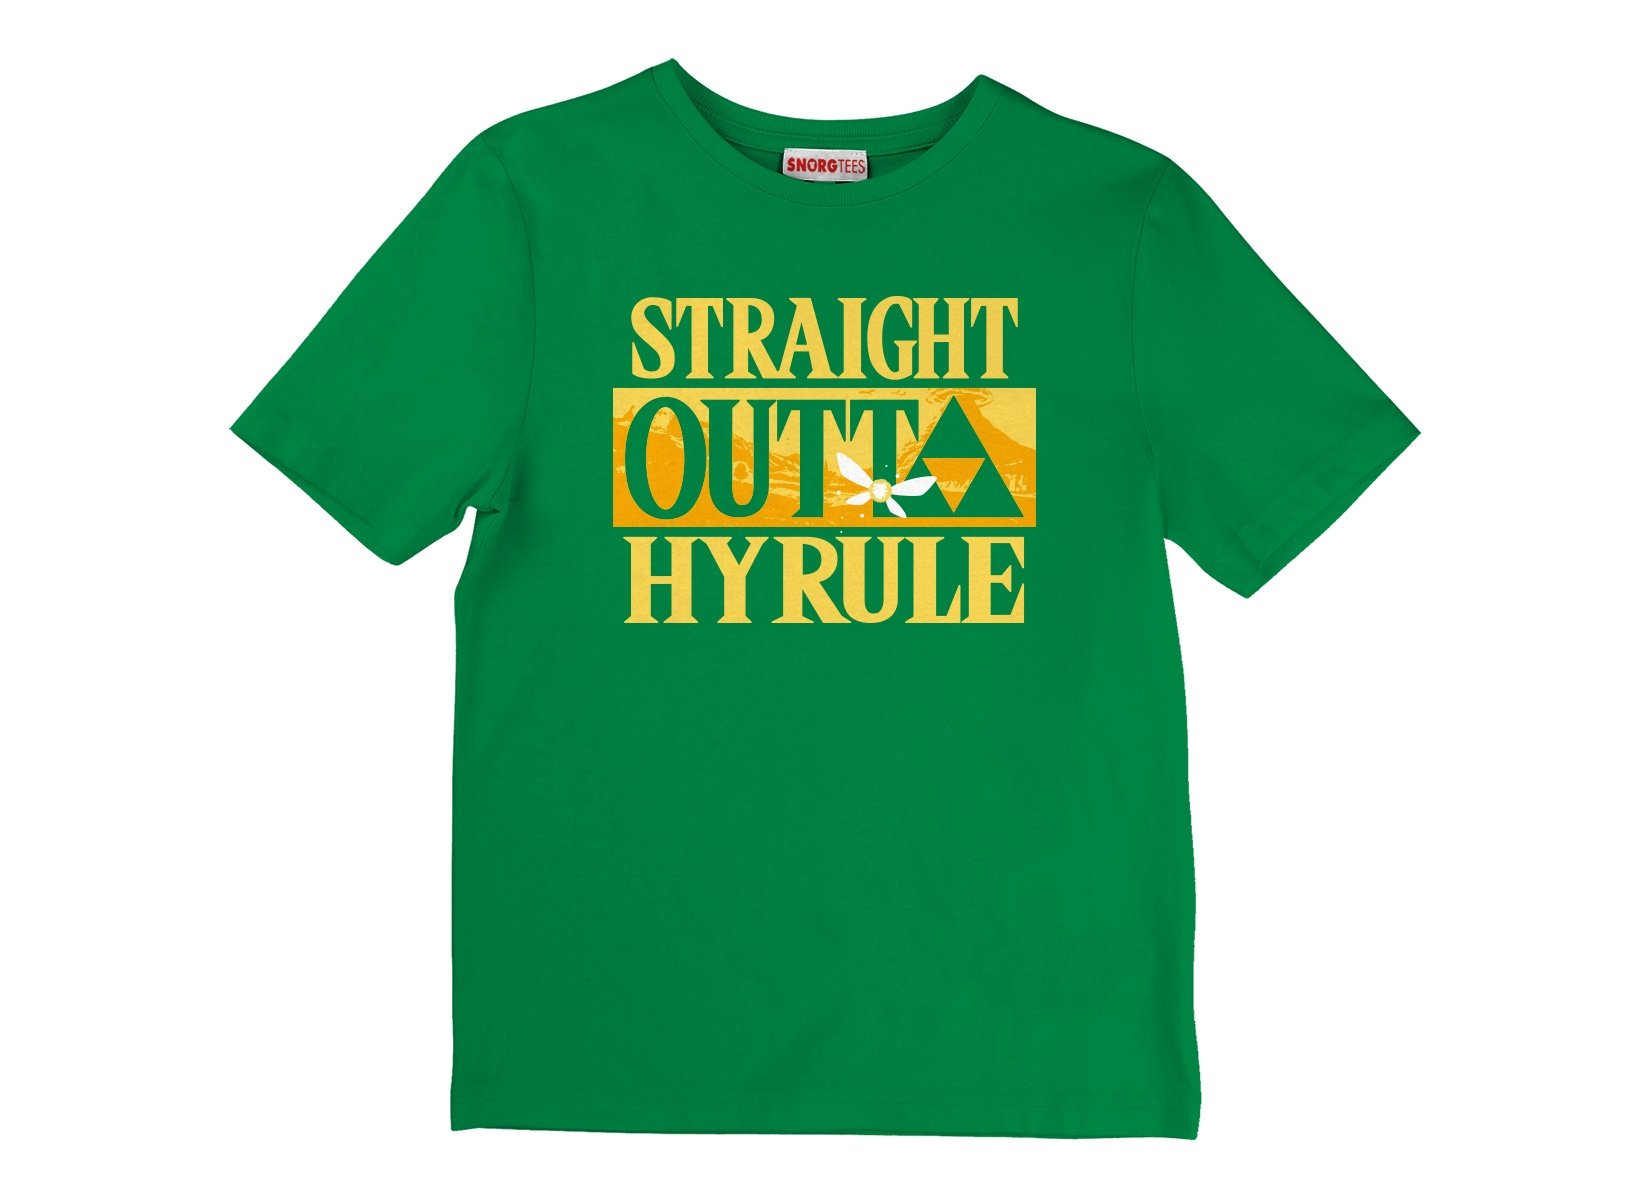 Straight Outta Hyrule on Kids T-Shirt